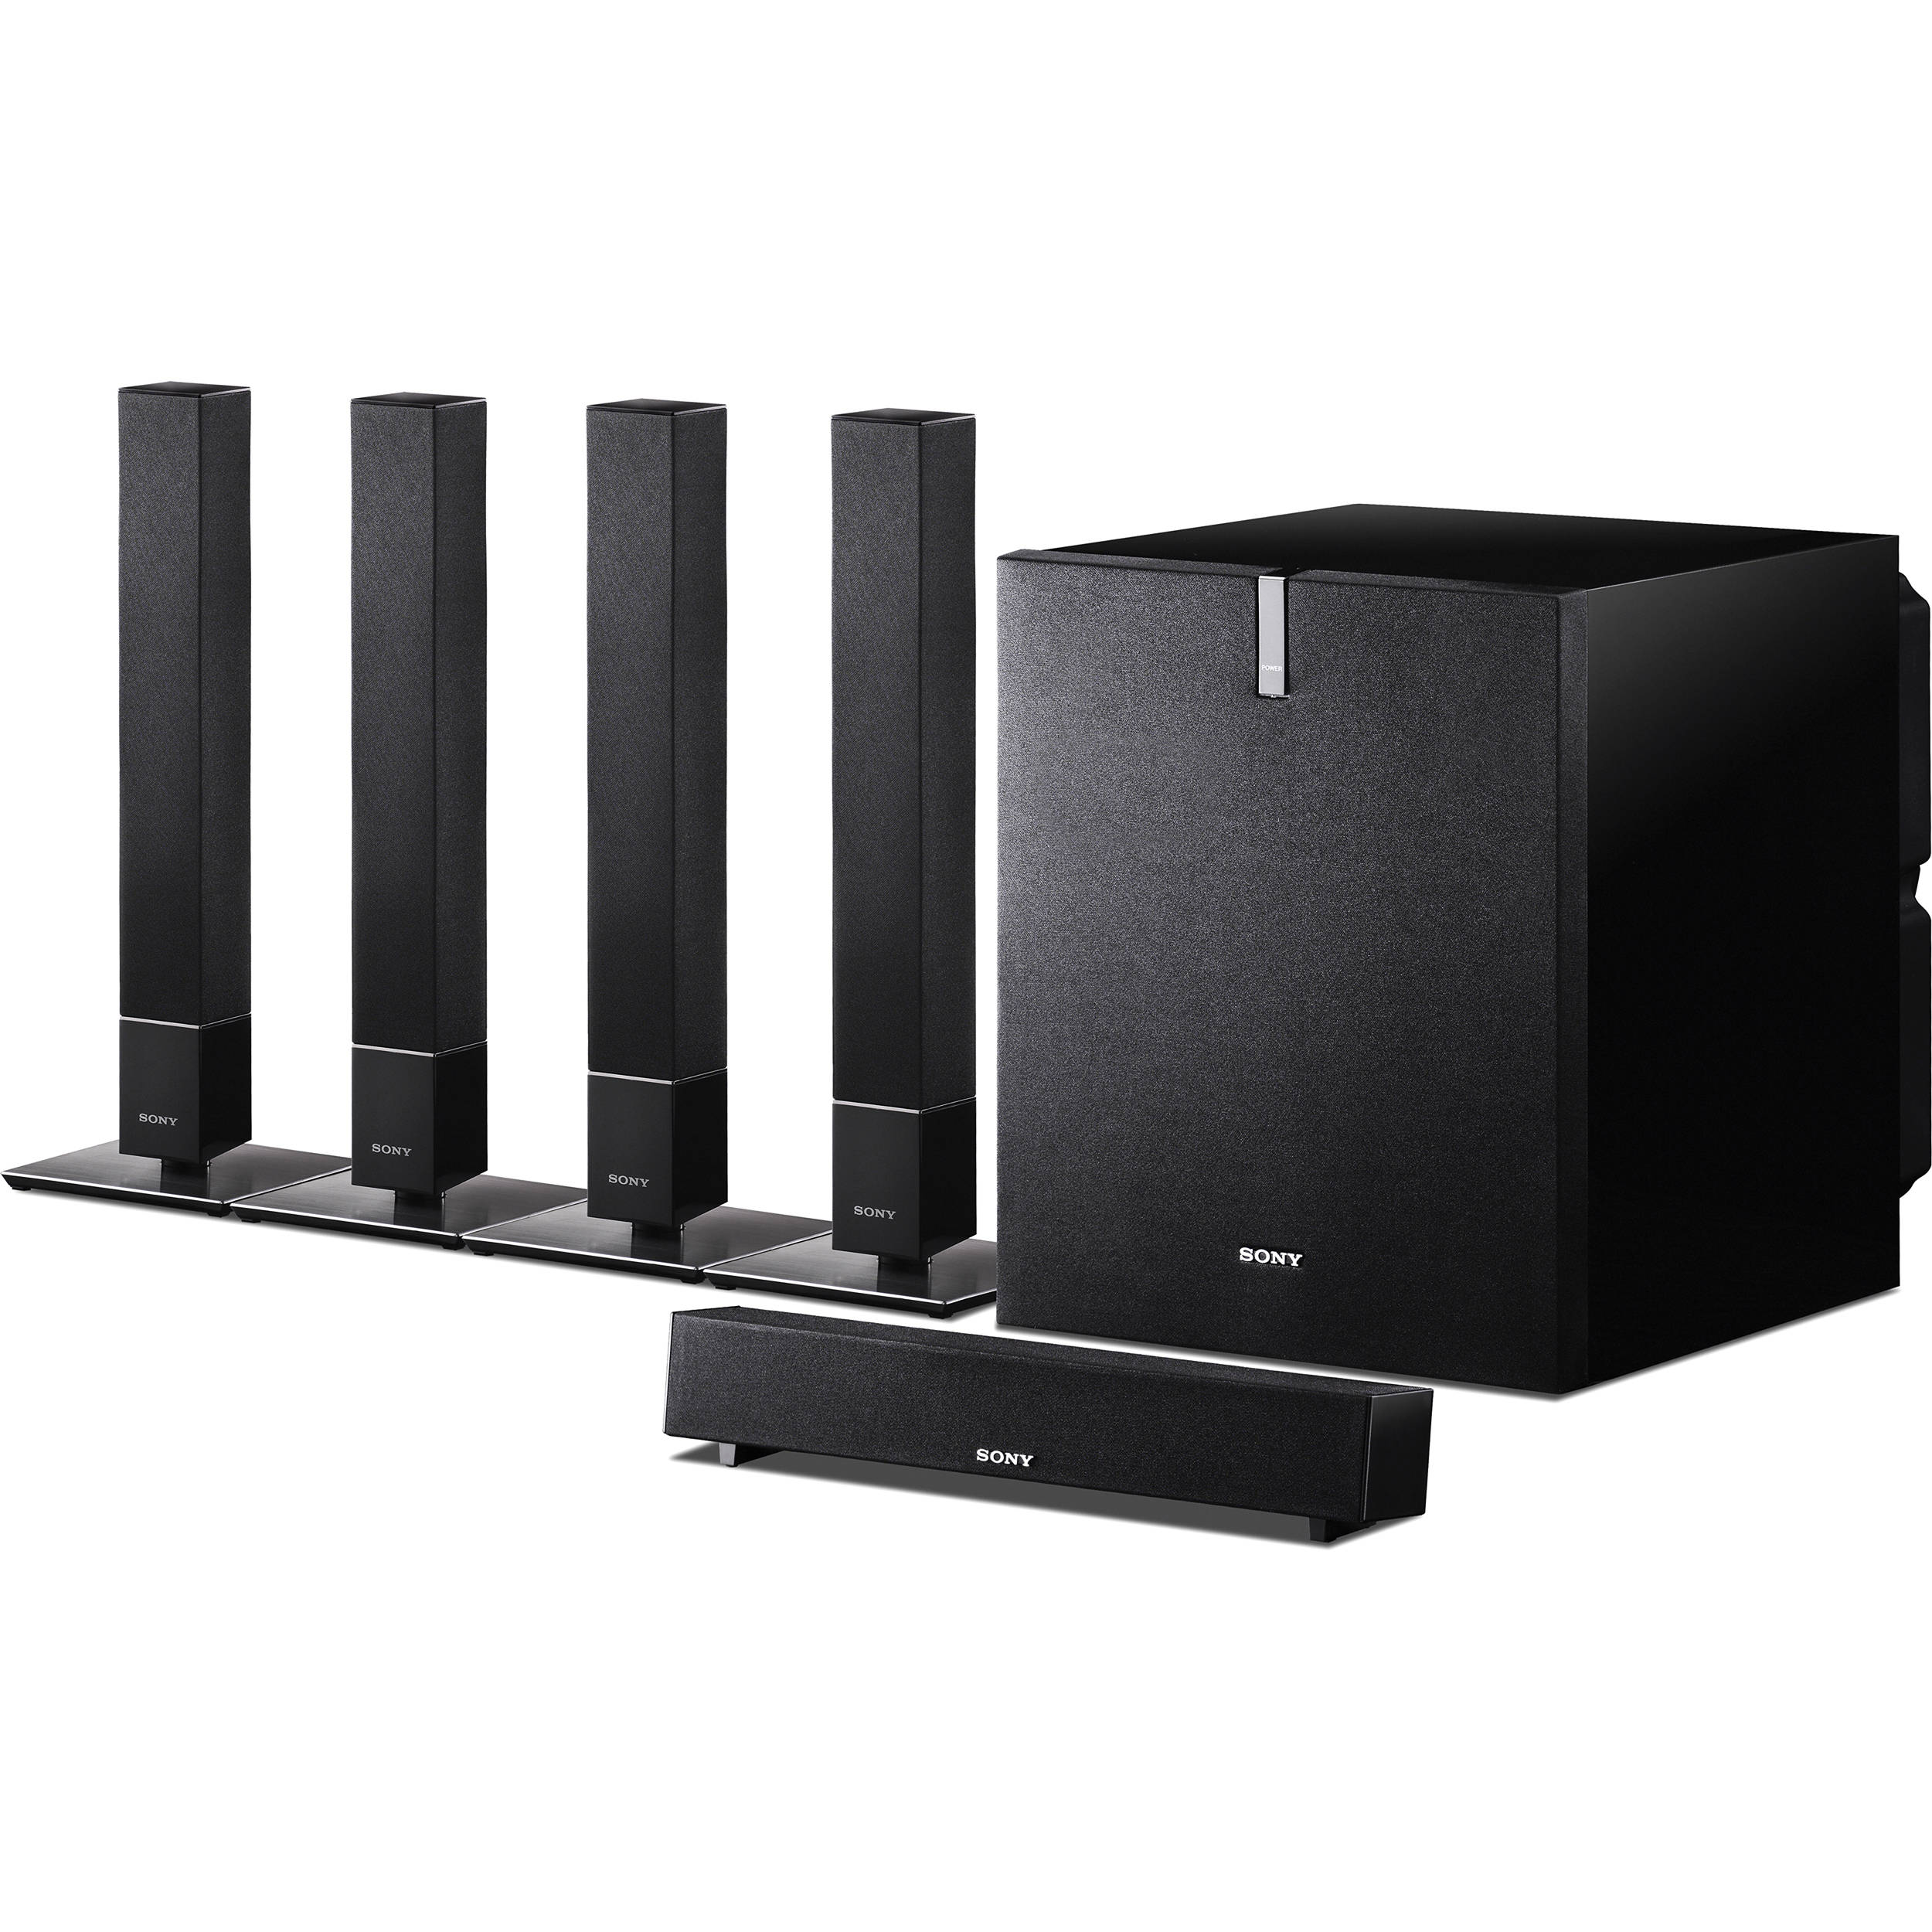 sony sa vs110 5 1 channel home theater speaker system sa vs110. Black Bedroom Furniture Sets. Home Design Ideas